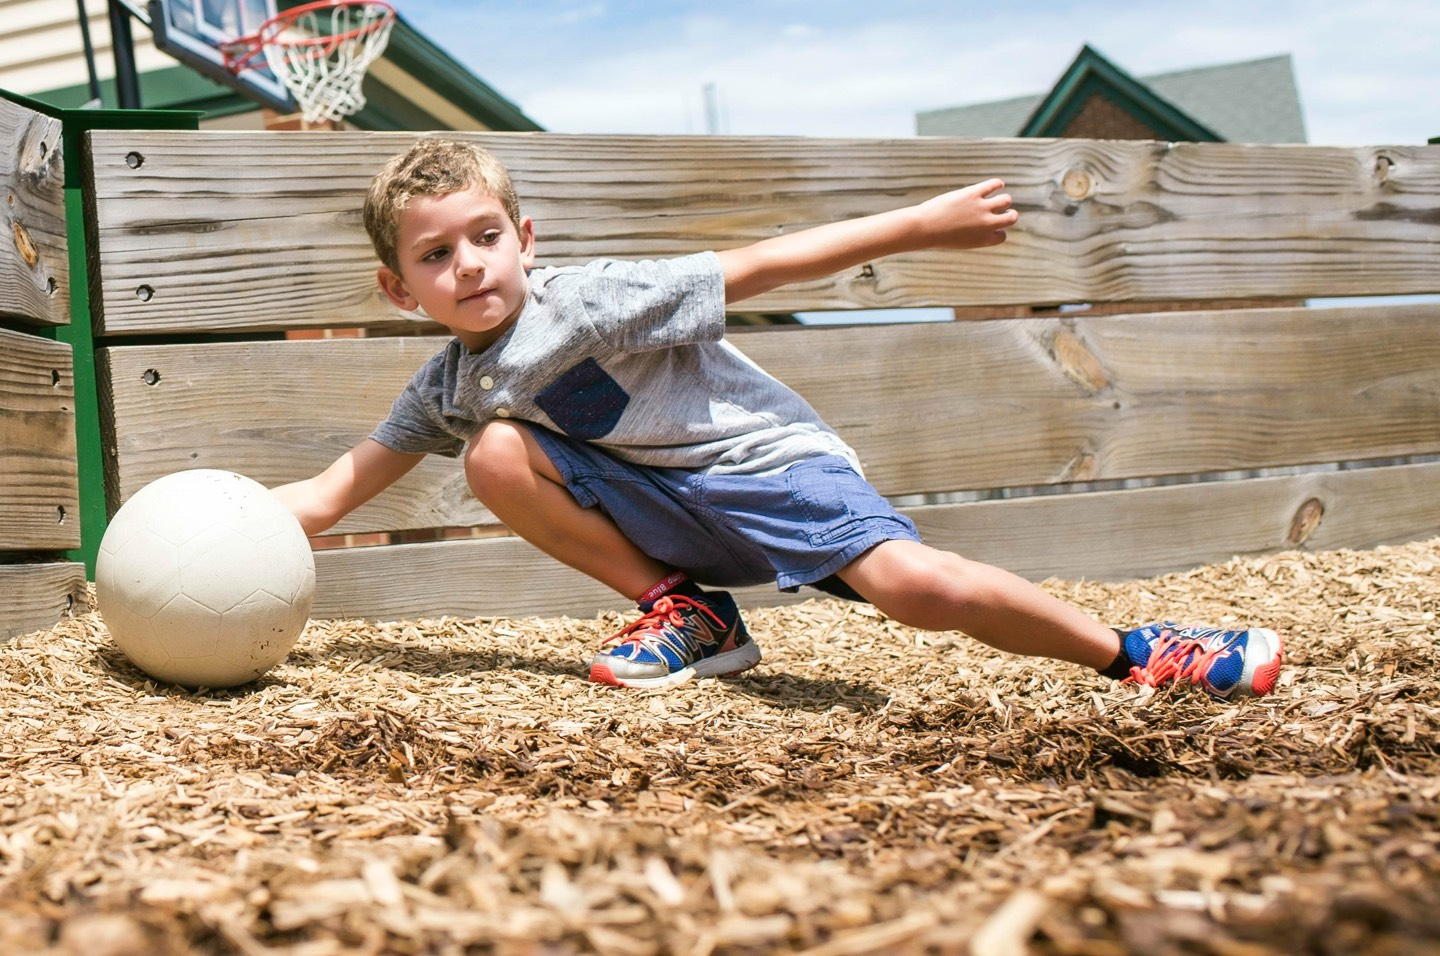 Boy grabbing ball in a mulched play-area